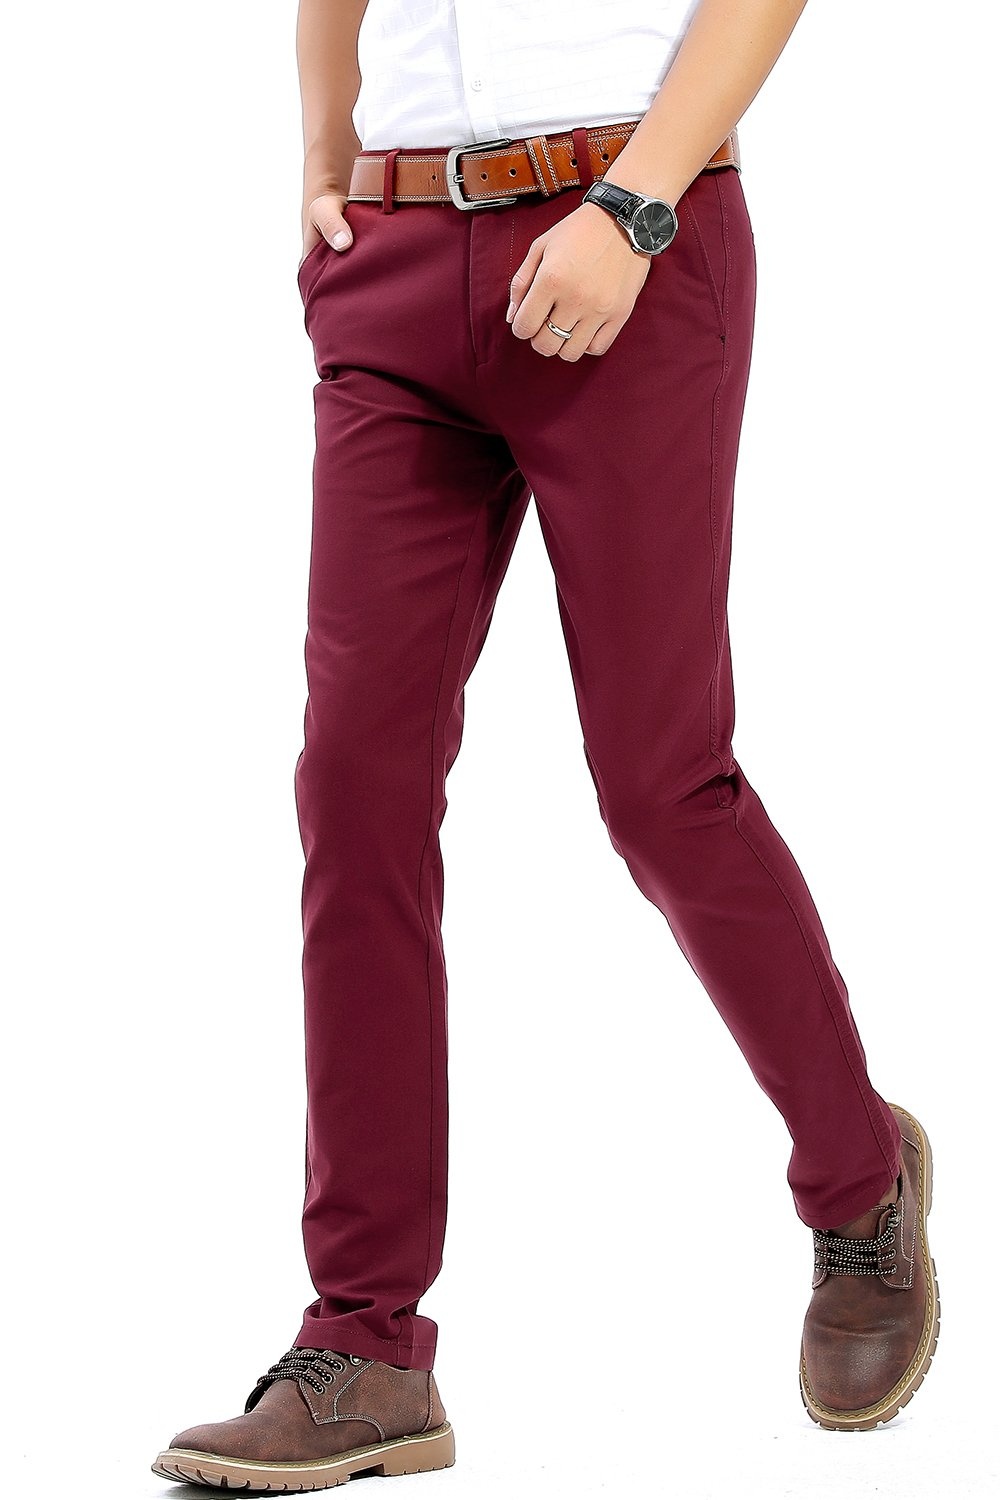 Harrms Business Casual Pants for Mens, Wine Red Slim Fit Trousers Pants, Size 29x30